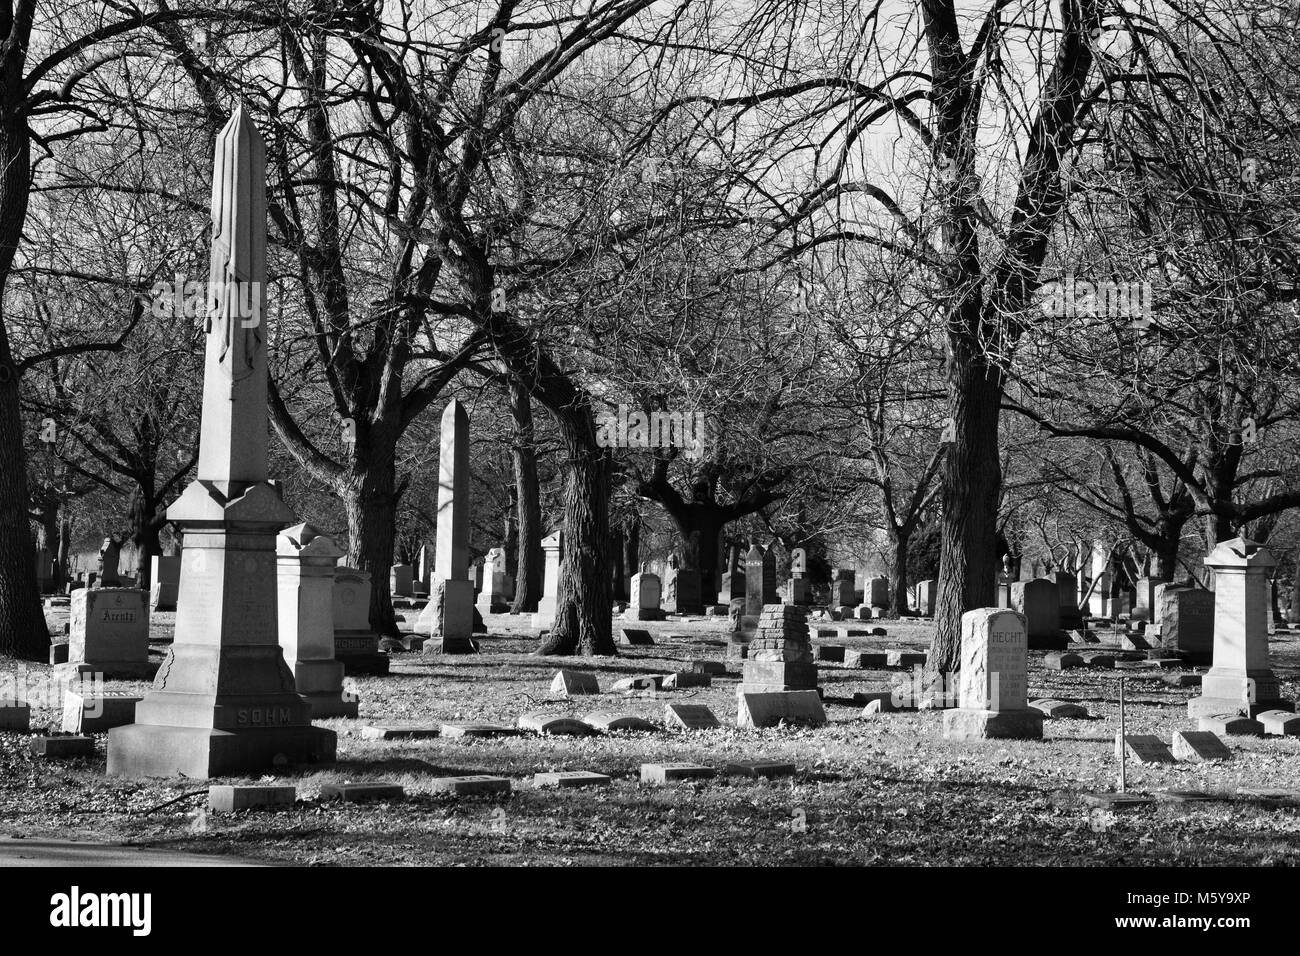 Grave markers at the historic north side Rosehill Cemetery, Chicago's largest burial ground. - Stock Image